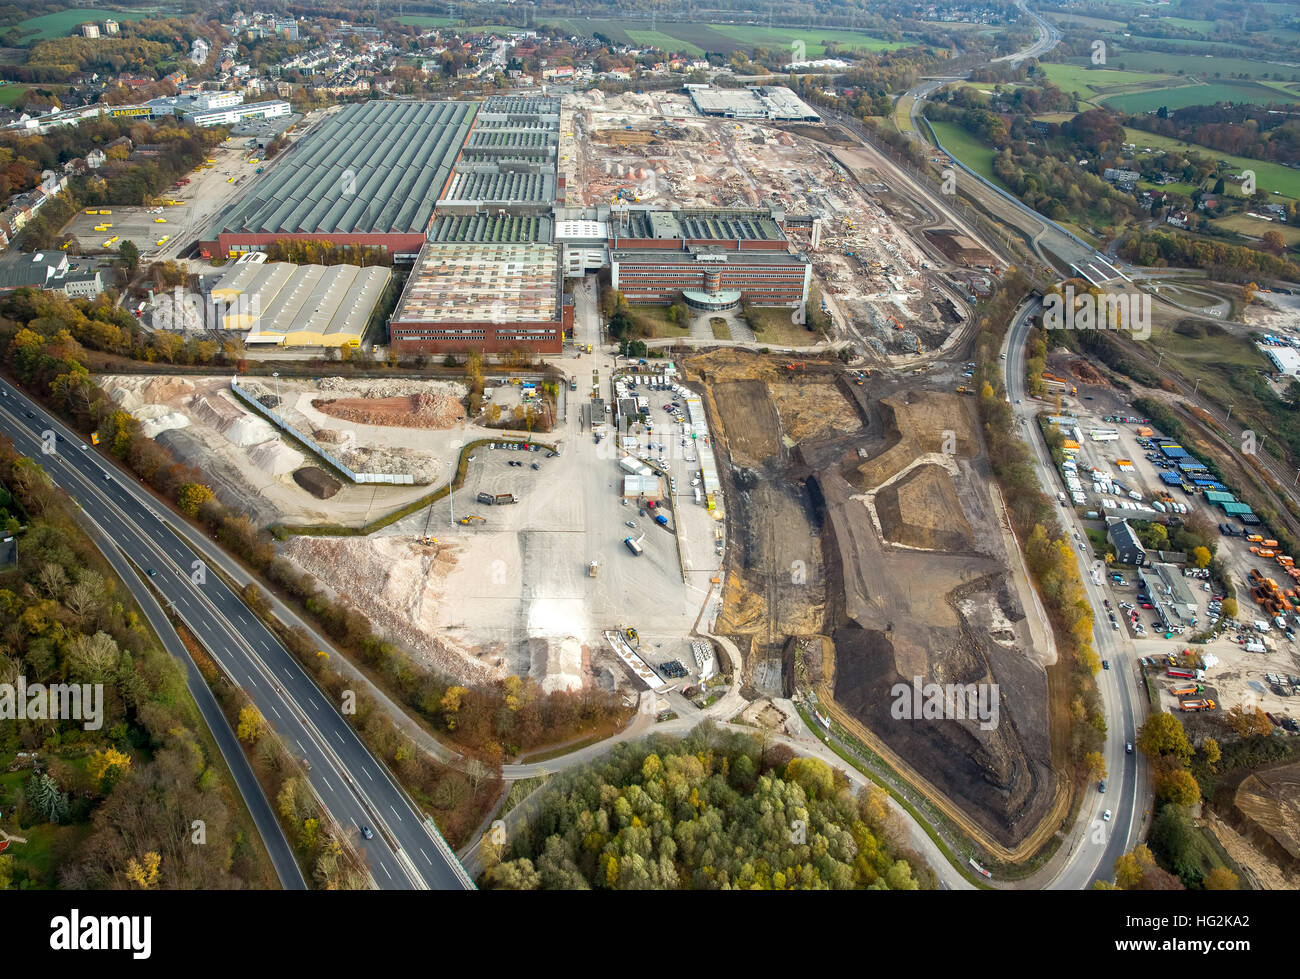 Aerial view, demolition OPEL plant 1, Administration Building, former car factory, General Motors, automotive, Bochum - Stock Image